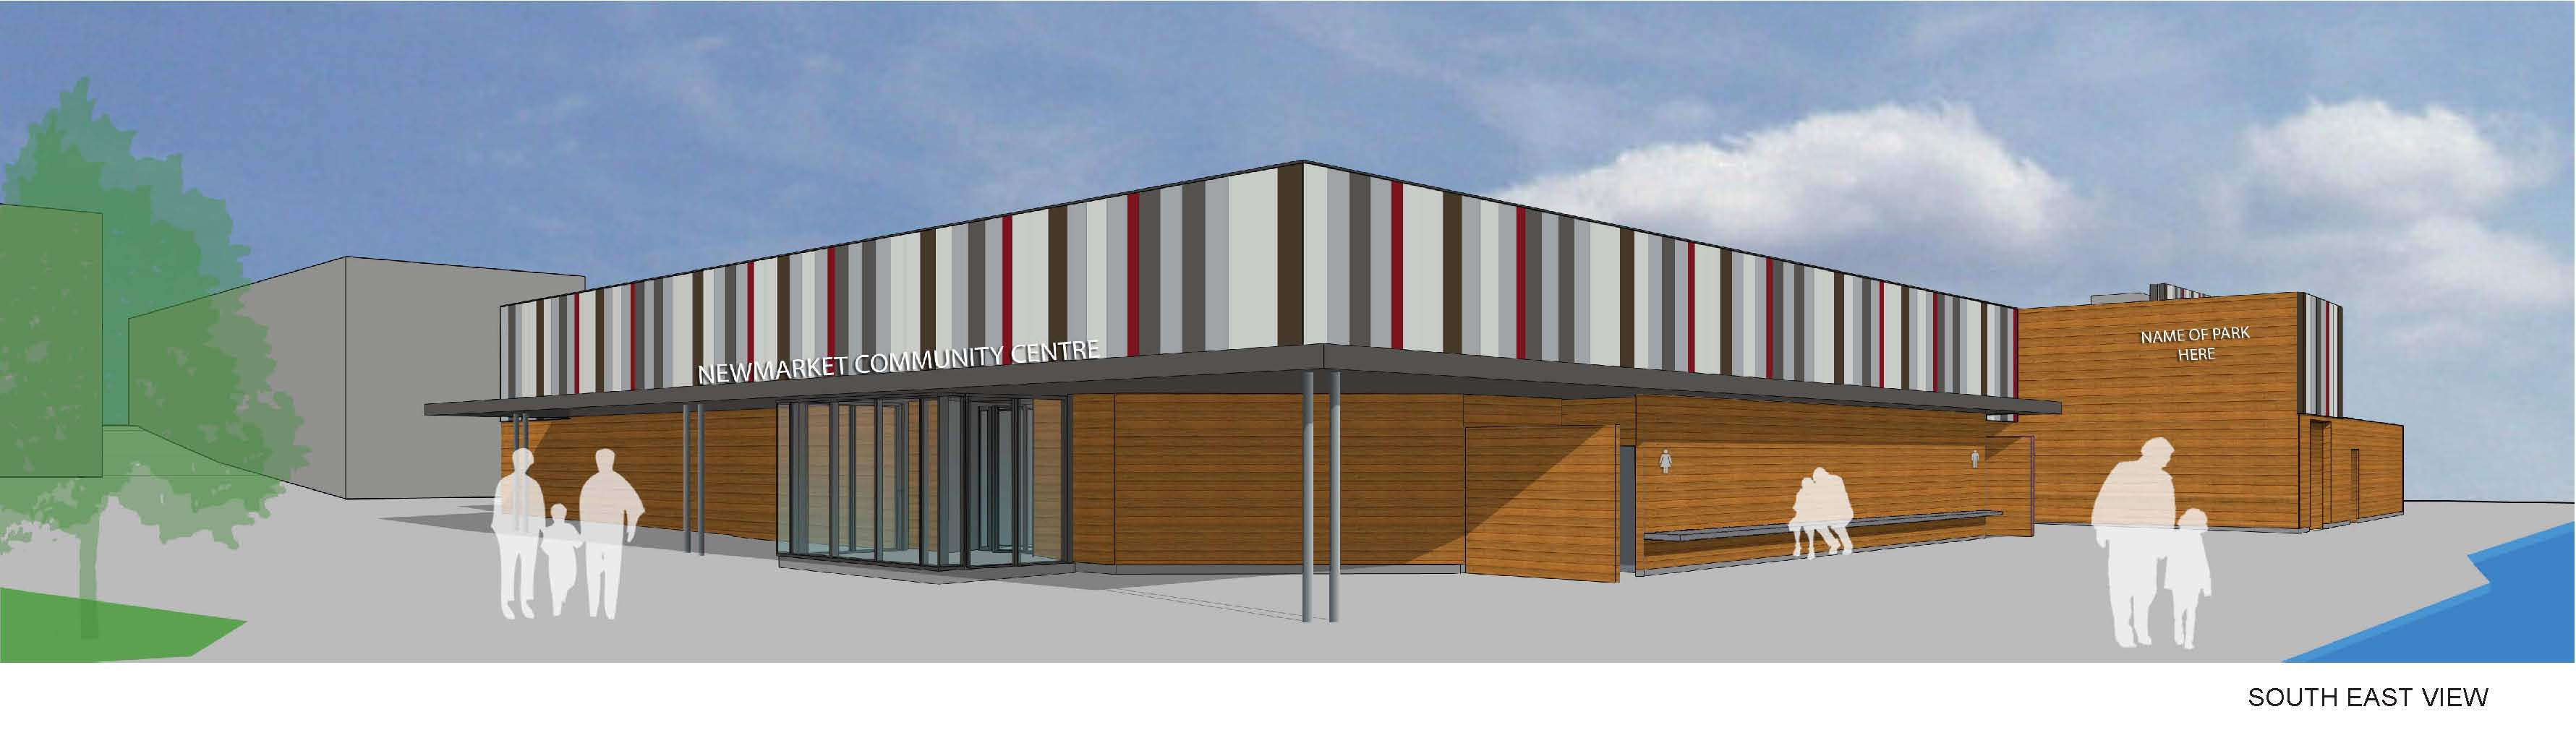 An artistic rendering of the Community Centre post renovations